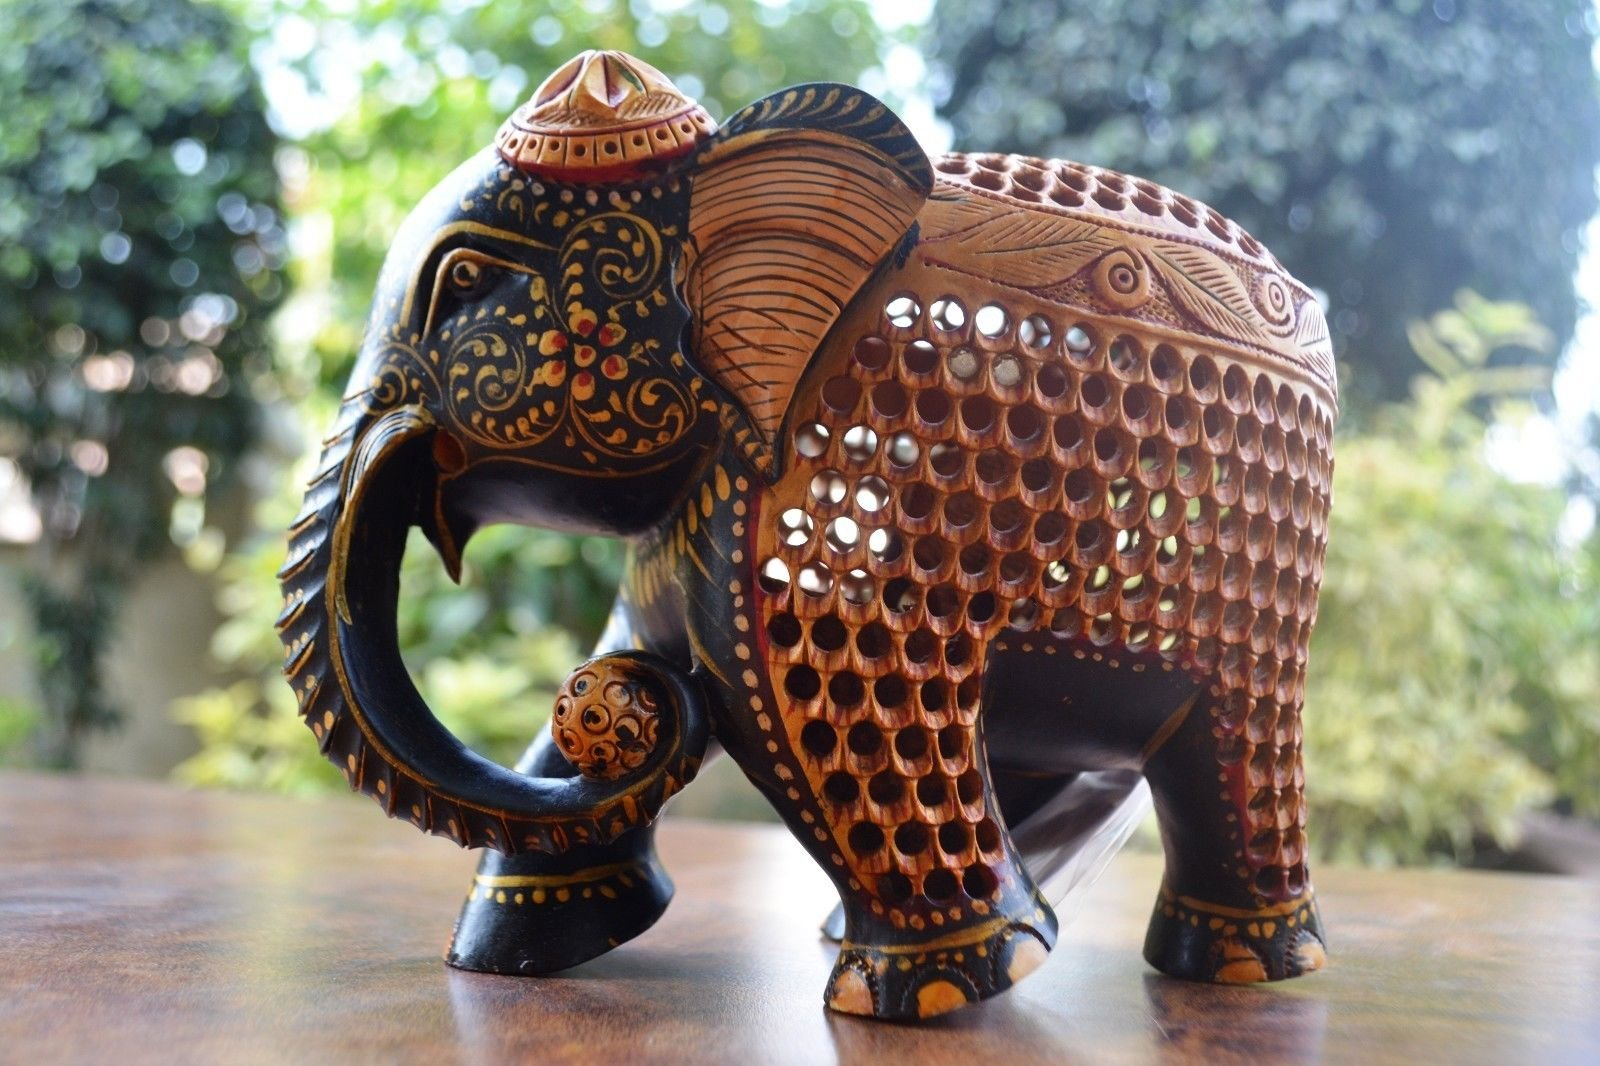 CraftVatika Wooden Elephant Statue- Mother Baby Figurine- Hand Painted Hand Craved Wooden Mother Elephant Figurine India with a Baby Elephant Inside